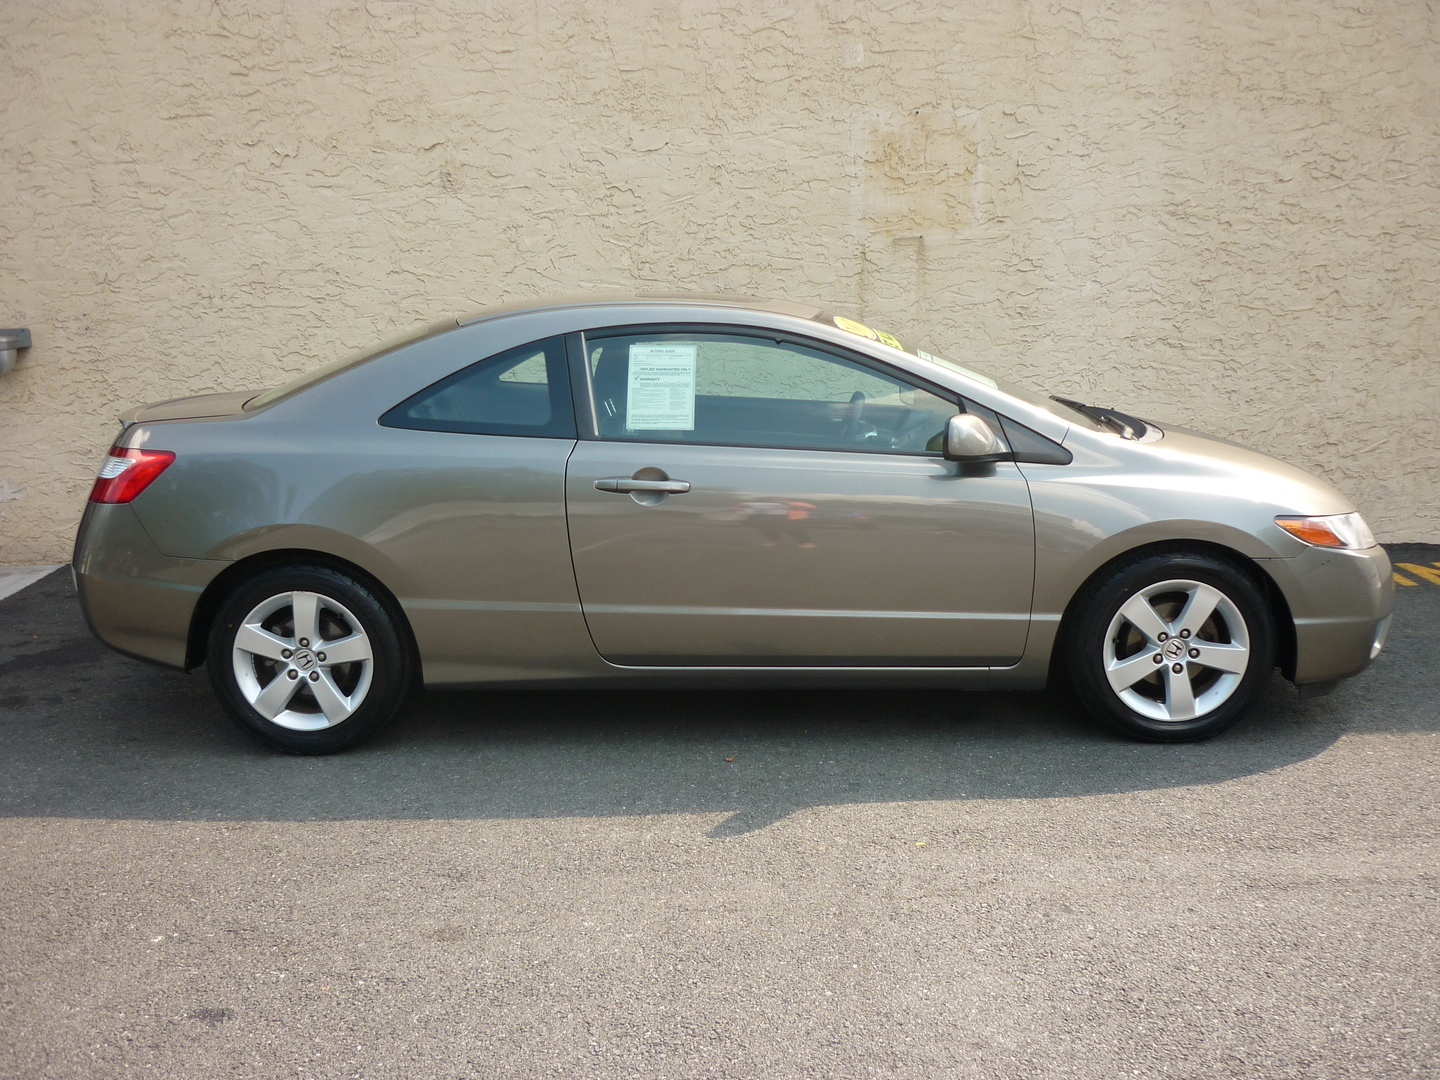 2007 Honda Civic EX 2dr Coupe (1.8L 4cyl 5A)